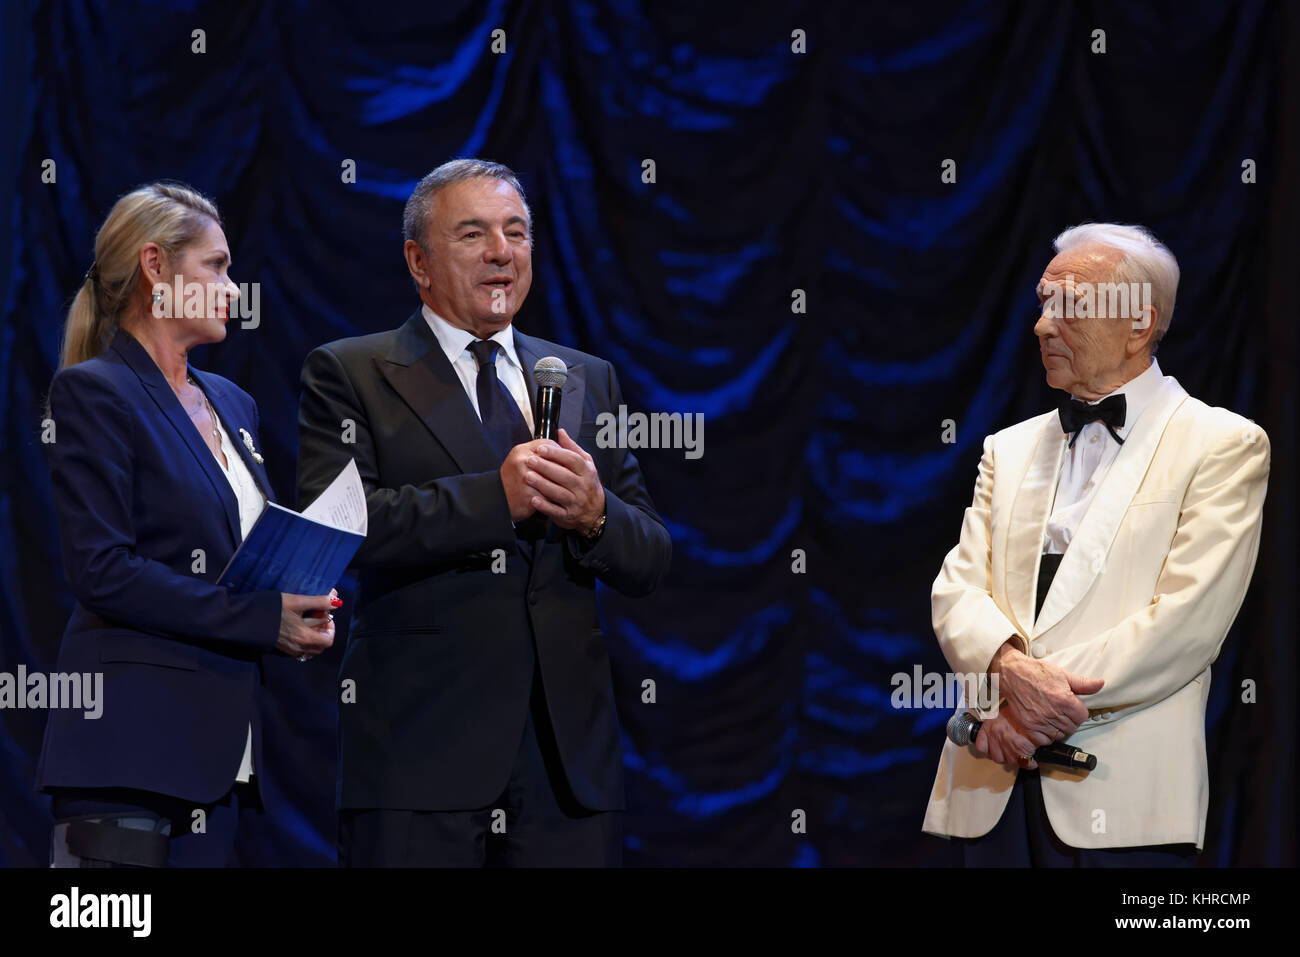 St. Petersburg, Russia - November 16, 2017: Producer Solomon Tencer (center) and artistic director Nadia Tencer - Stock Image